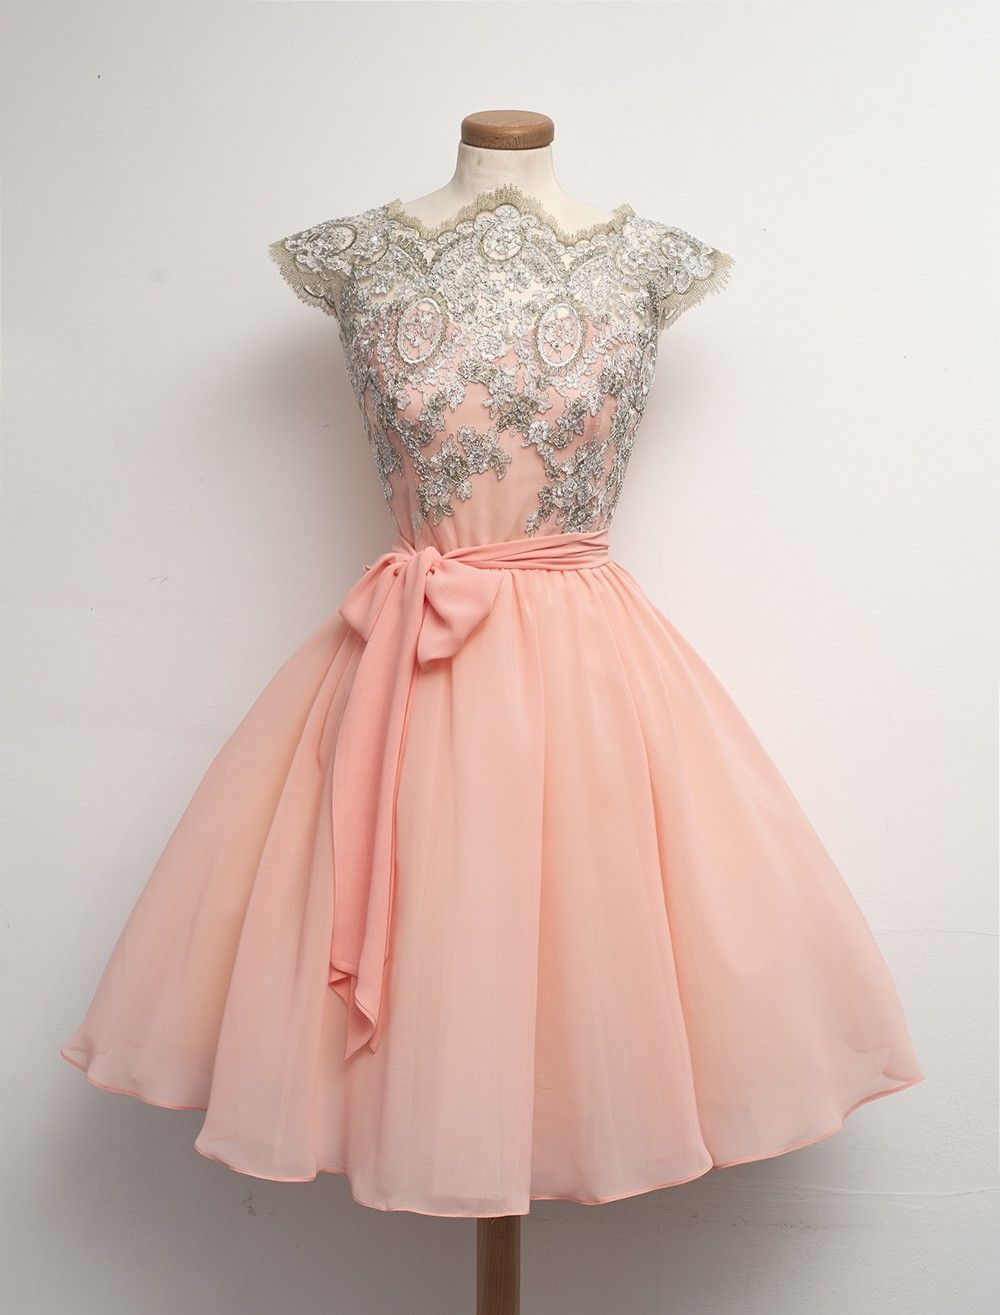 Prom Dresses amp Gowns in Cute Long amp Short Styles  ModCloth